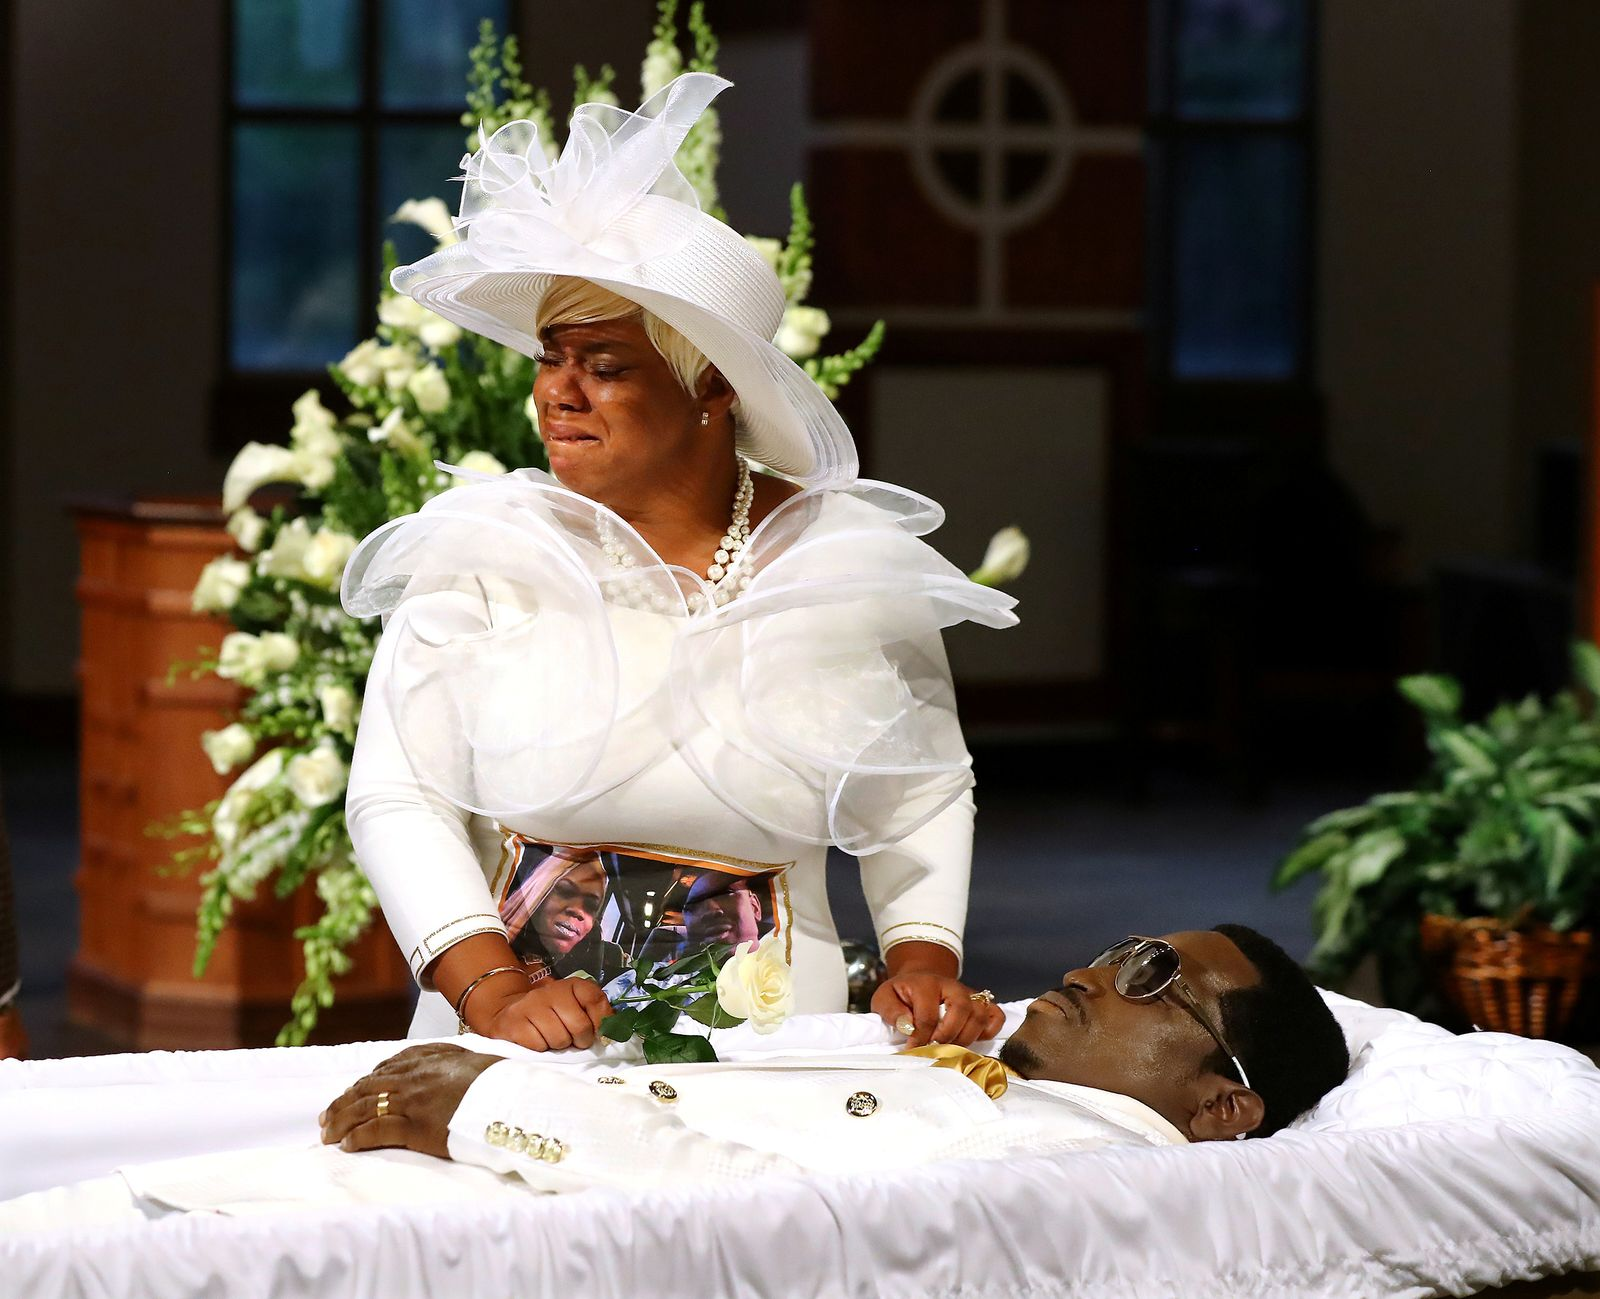 The body of Rayshard Brooks, who was shot dead by an Atlanta police officer, is viewed by mourners at Ebenezer Baptist Church in Atlanta